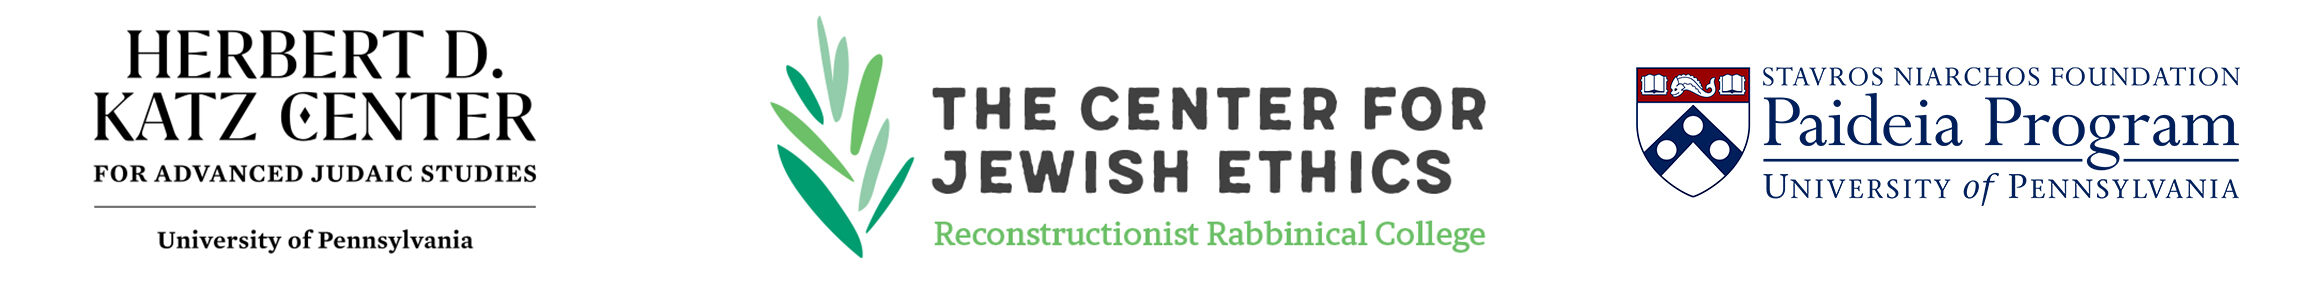 sponsors for Jews Race and Religion Lecture Series